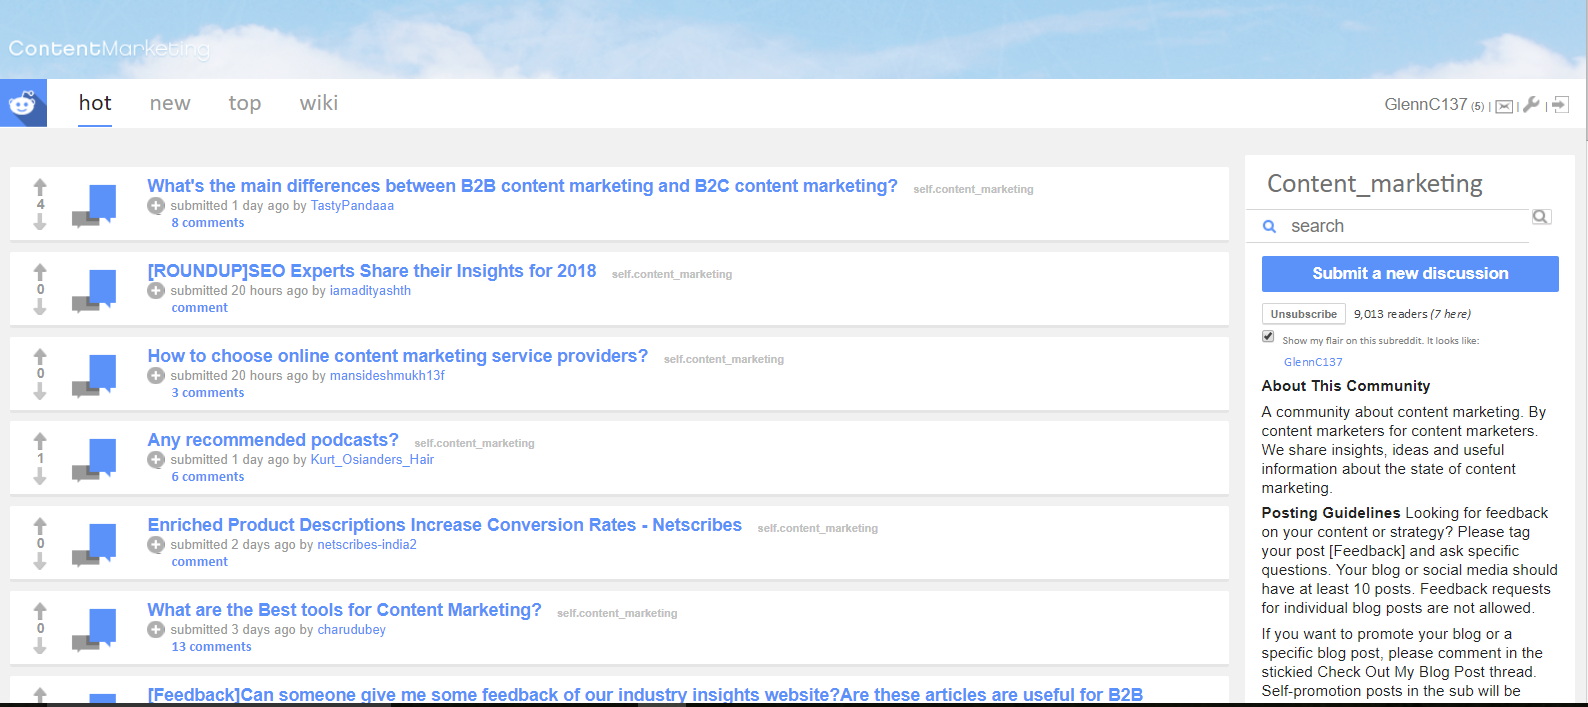 An example of a content marketing subreddit.